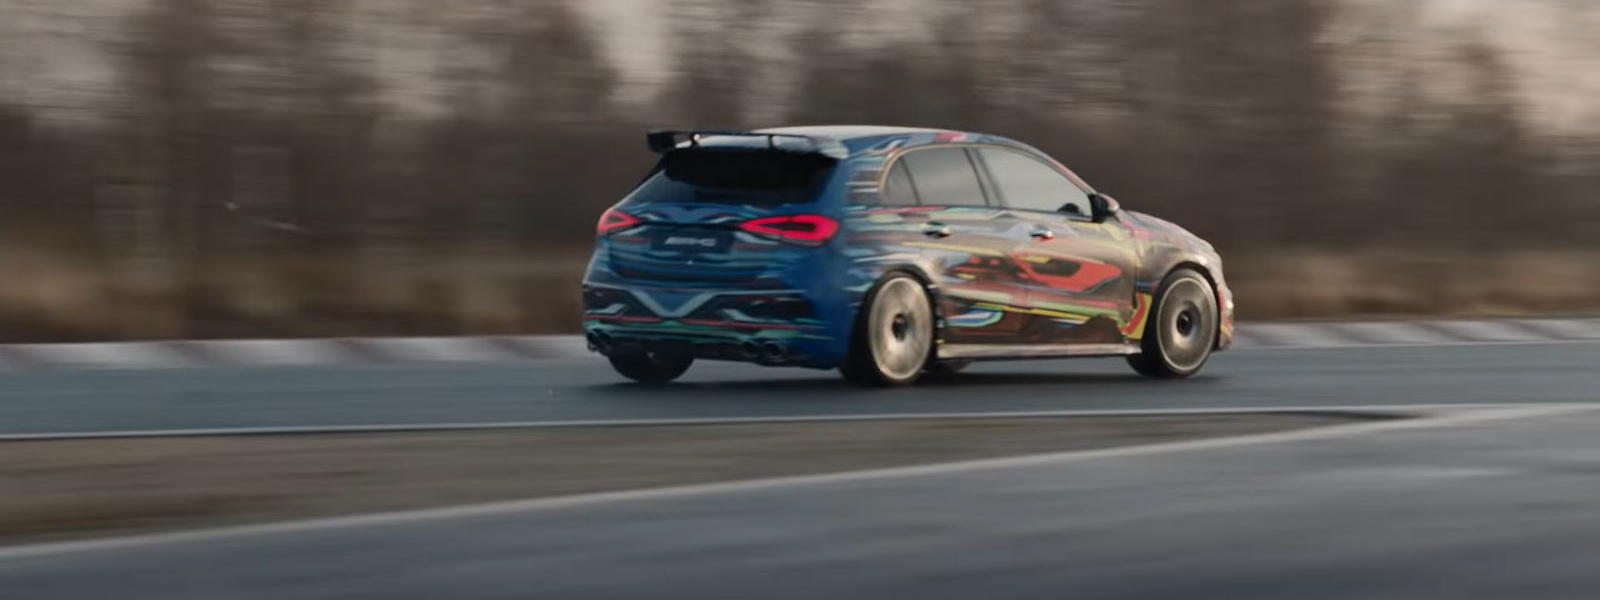 mercedes-amg-a45-teaser-video-2.jpg